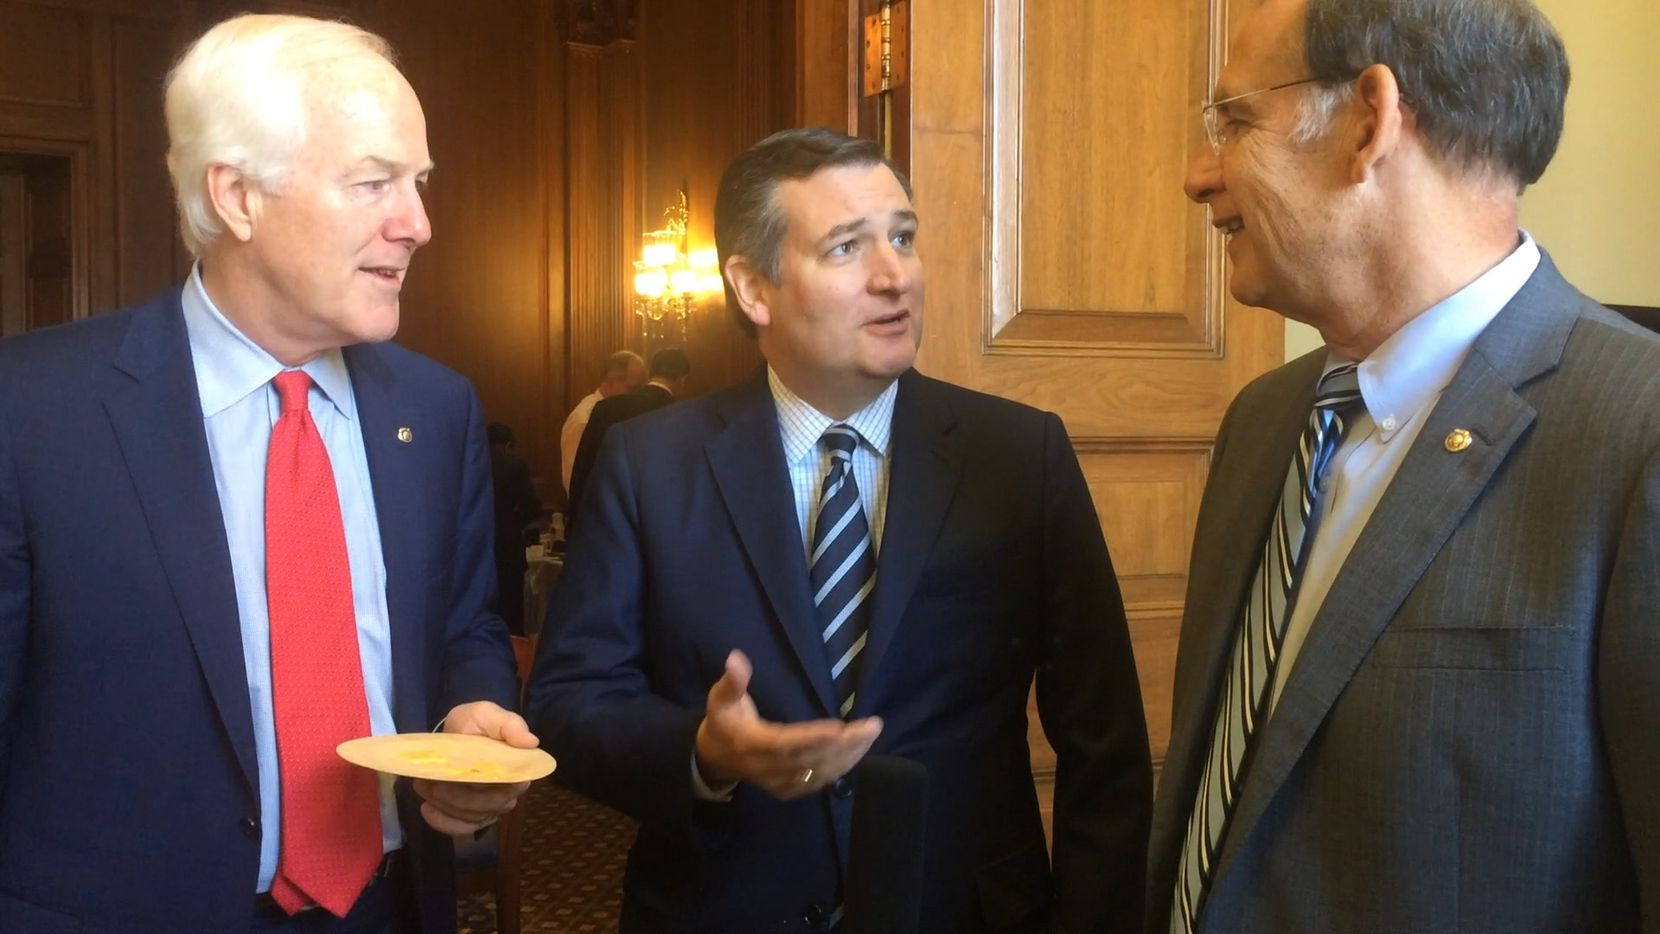 At a cheesy competition on Wednesday, Texas Sens. John Cornyn and Ted Cruz tried to convince their fellow senators that Texas queso is indisputably better than Arkansas cheese dip. (Jordan Rudner / The Dallas Morning News)